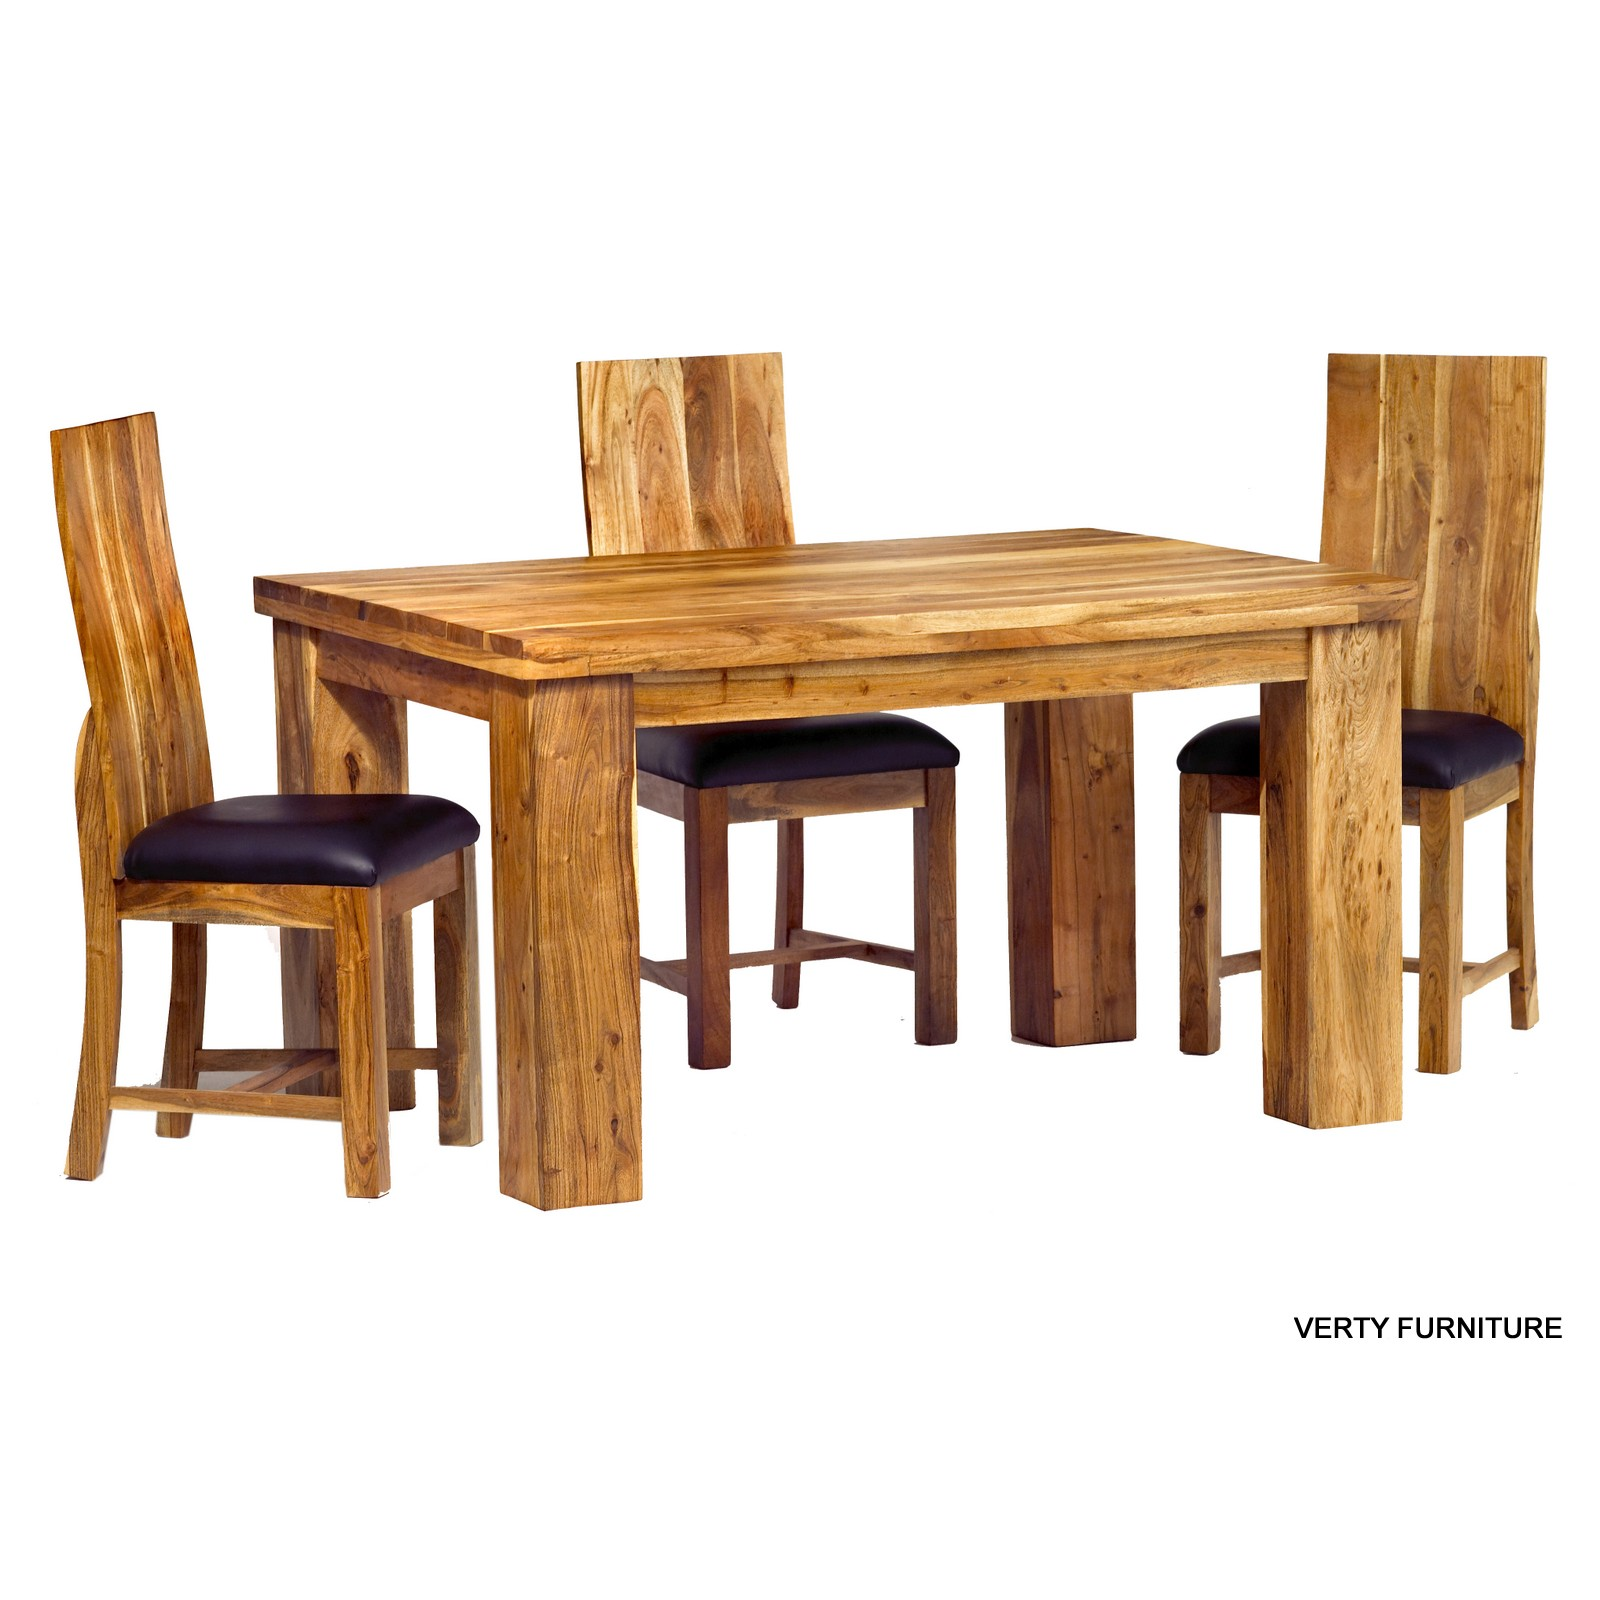 Acacia dining table small with 4 chairs verty indian for Wooden small dining table